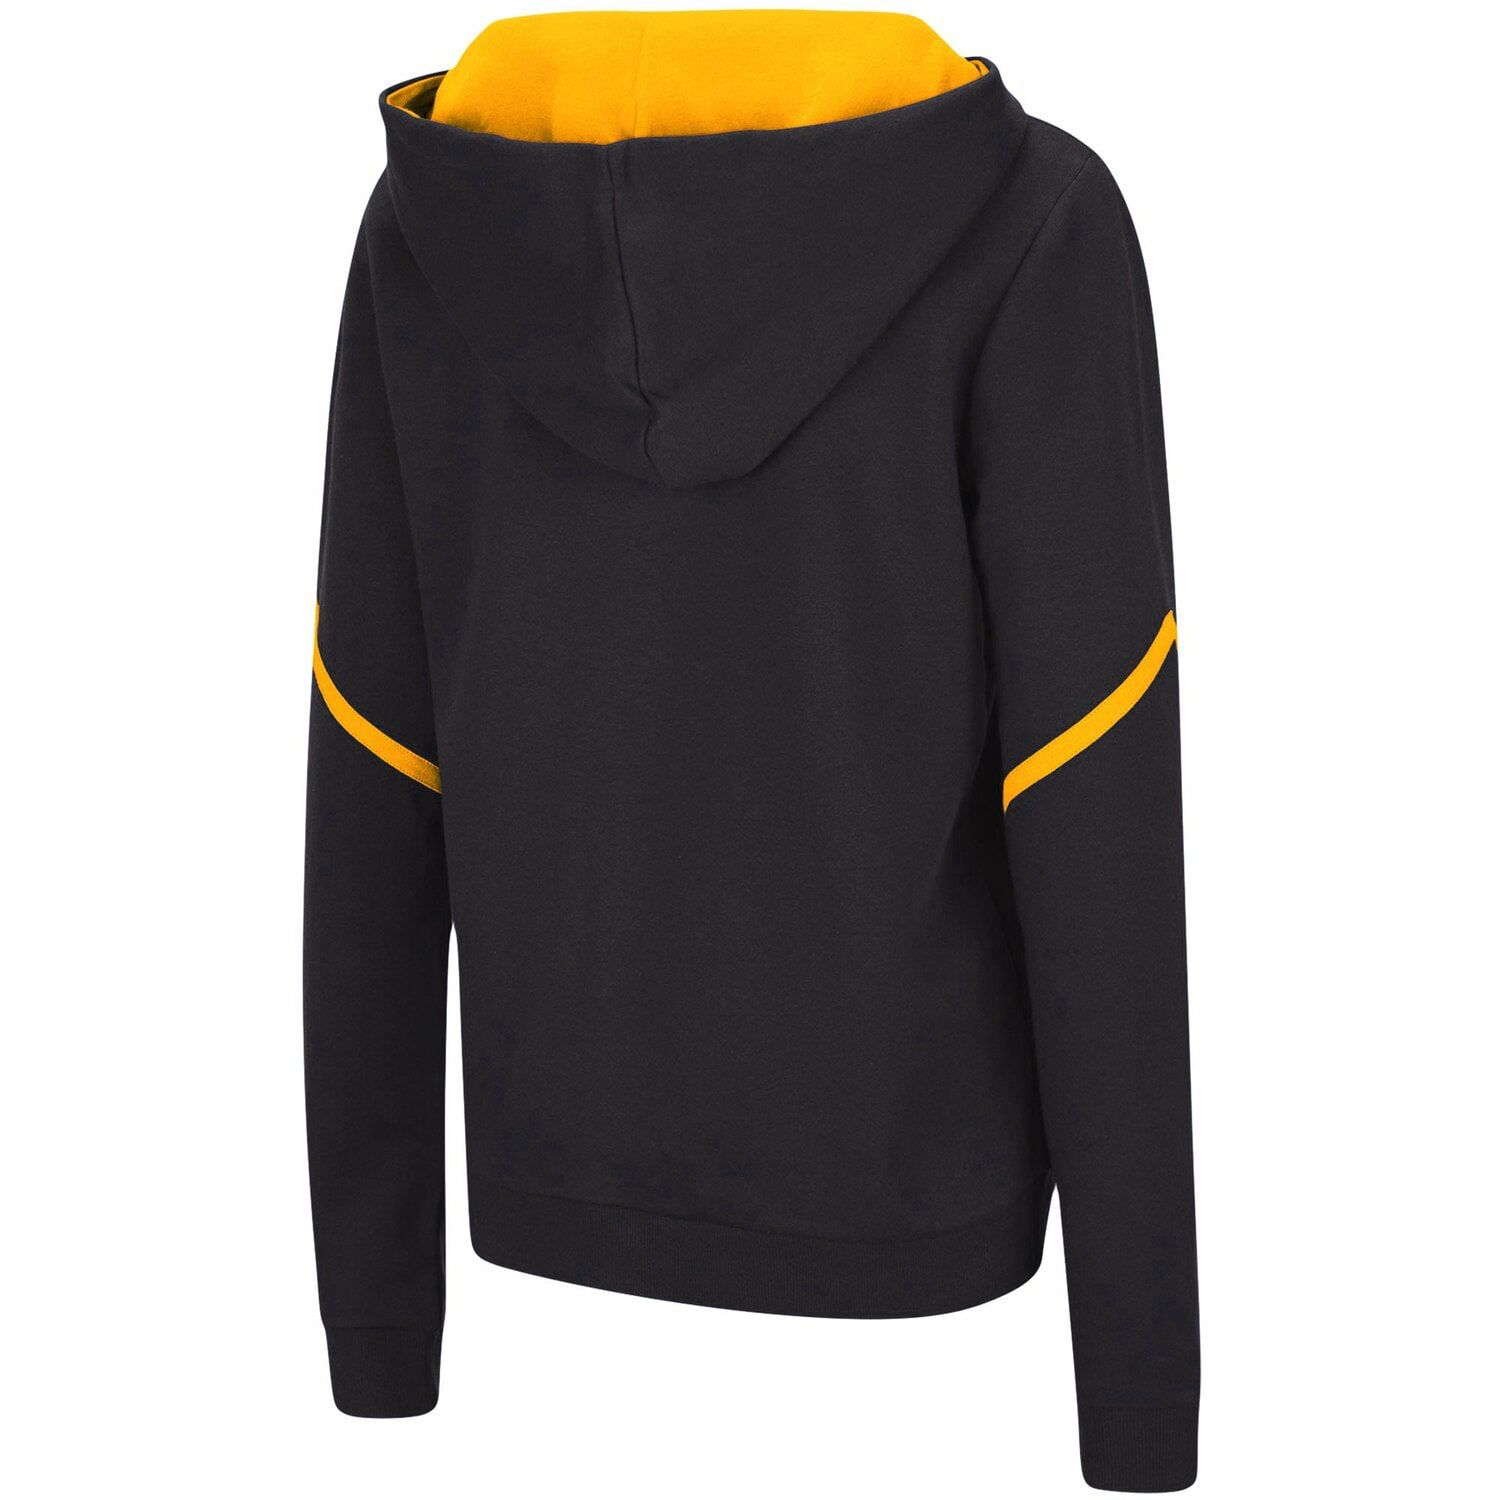 Women's Colosseum Navy West Virginia Mountaineers Maeby Lace-up Pullover Hoodie #westvirginia